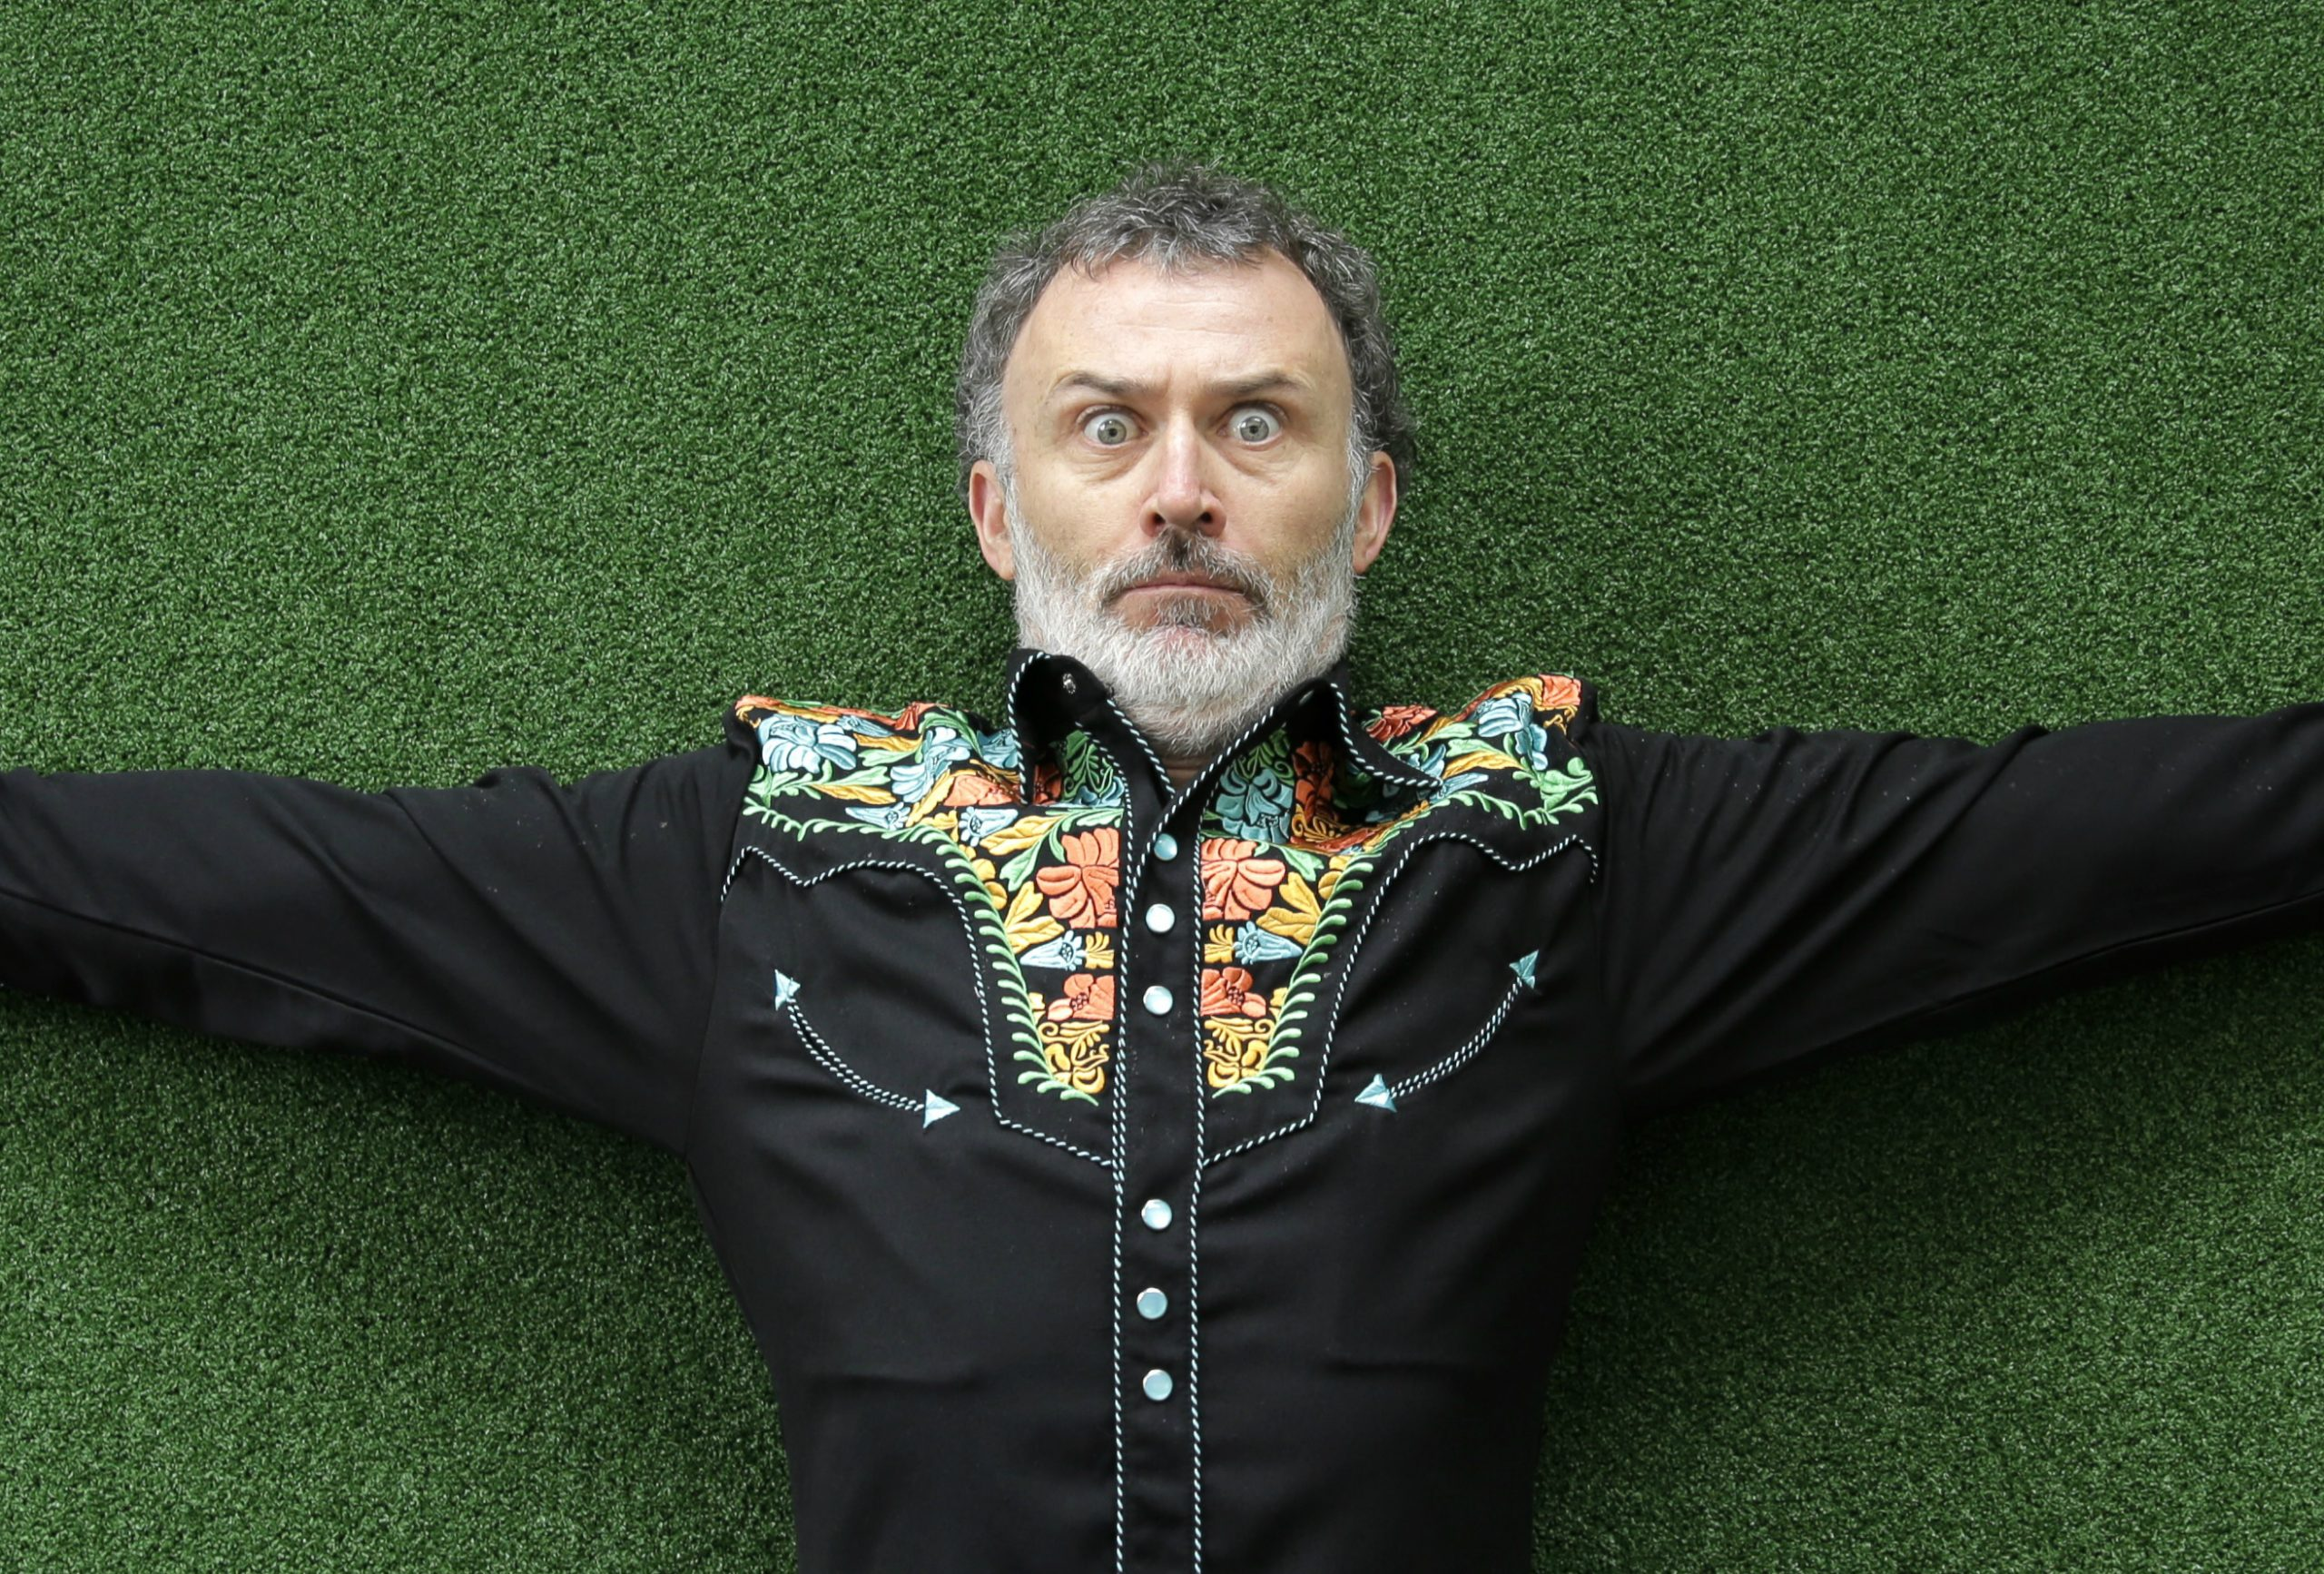 Tommy Tiernan among the sterling comedy line-up for All Together Now in Portlaw